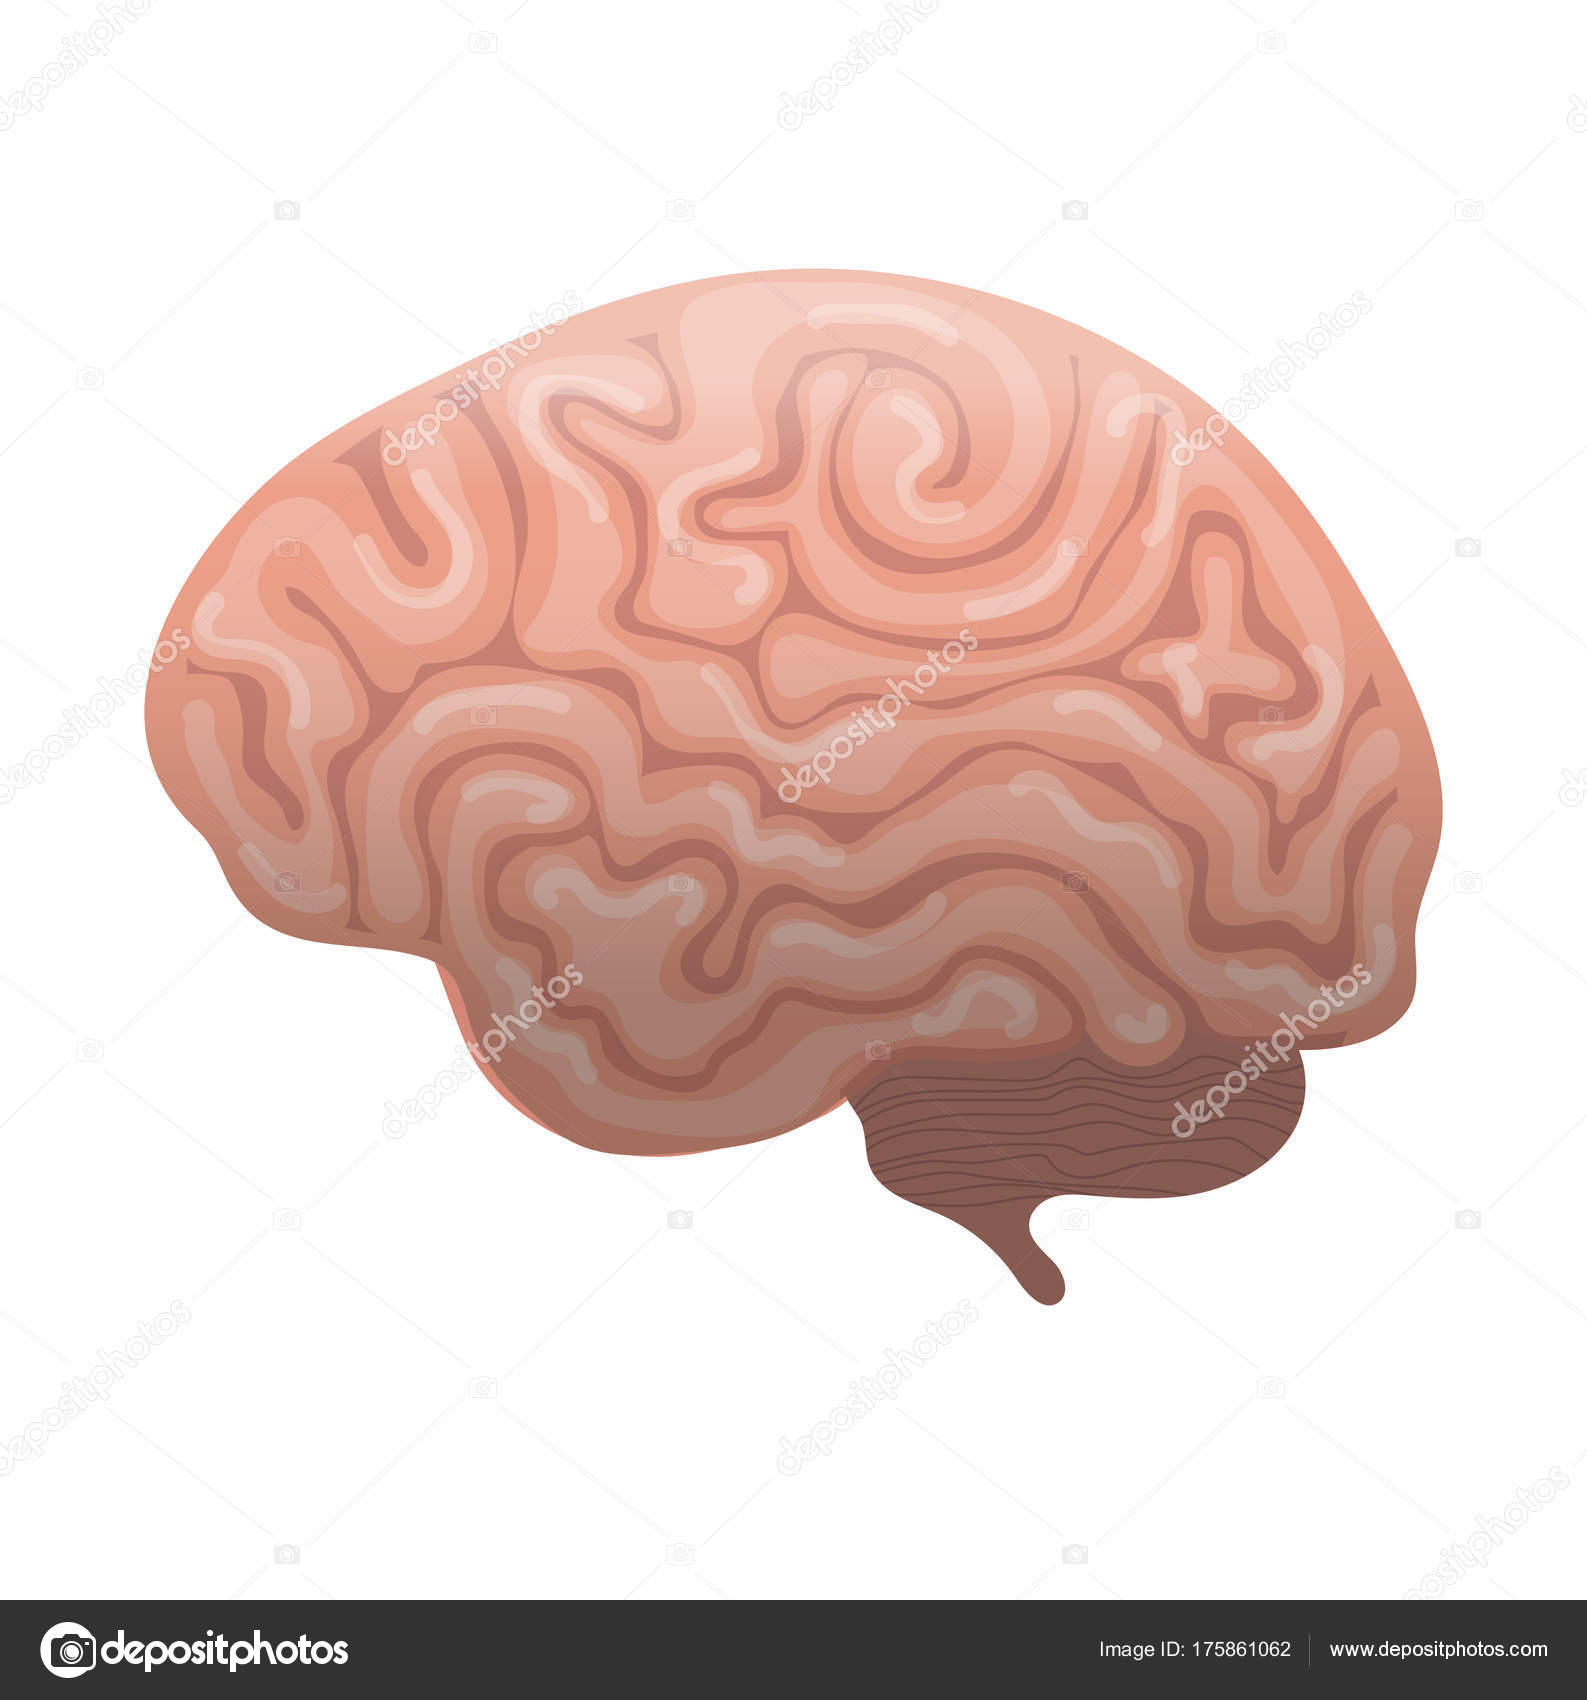 Human brain icon flat style internal organs symbol the side view internal organs symbol the side view isolated on ccuart Images